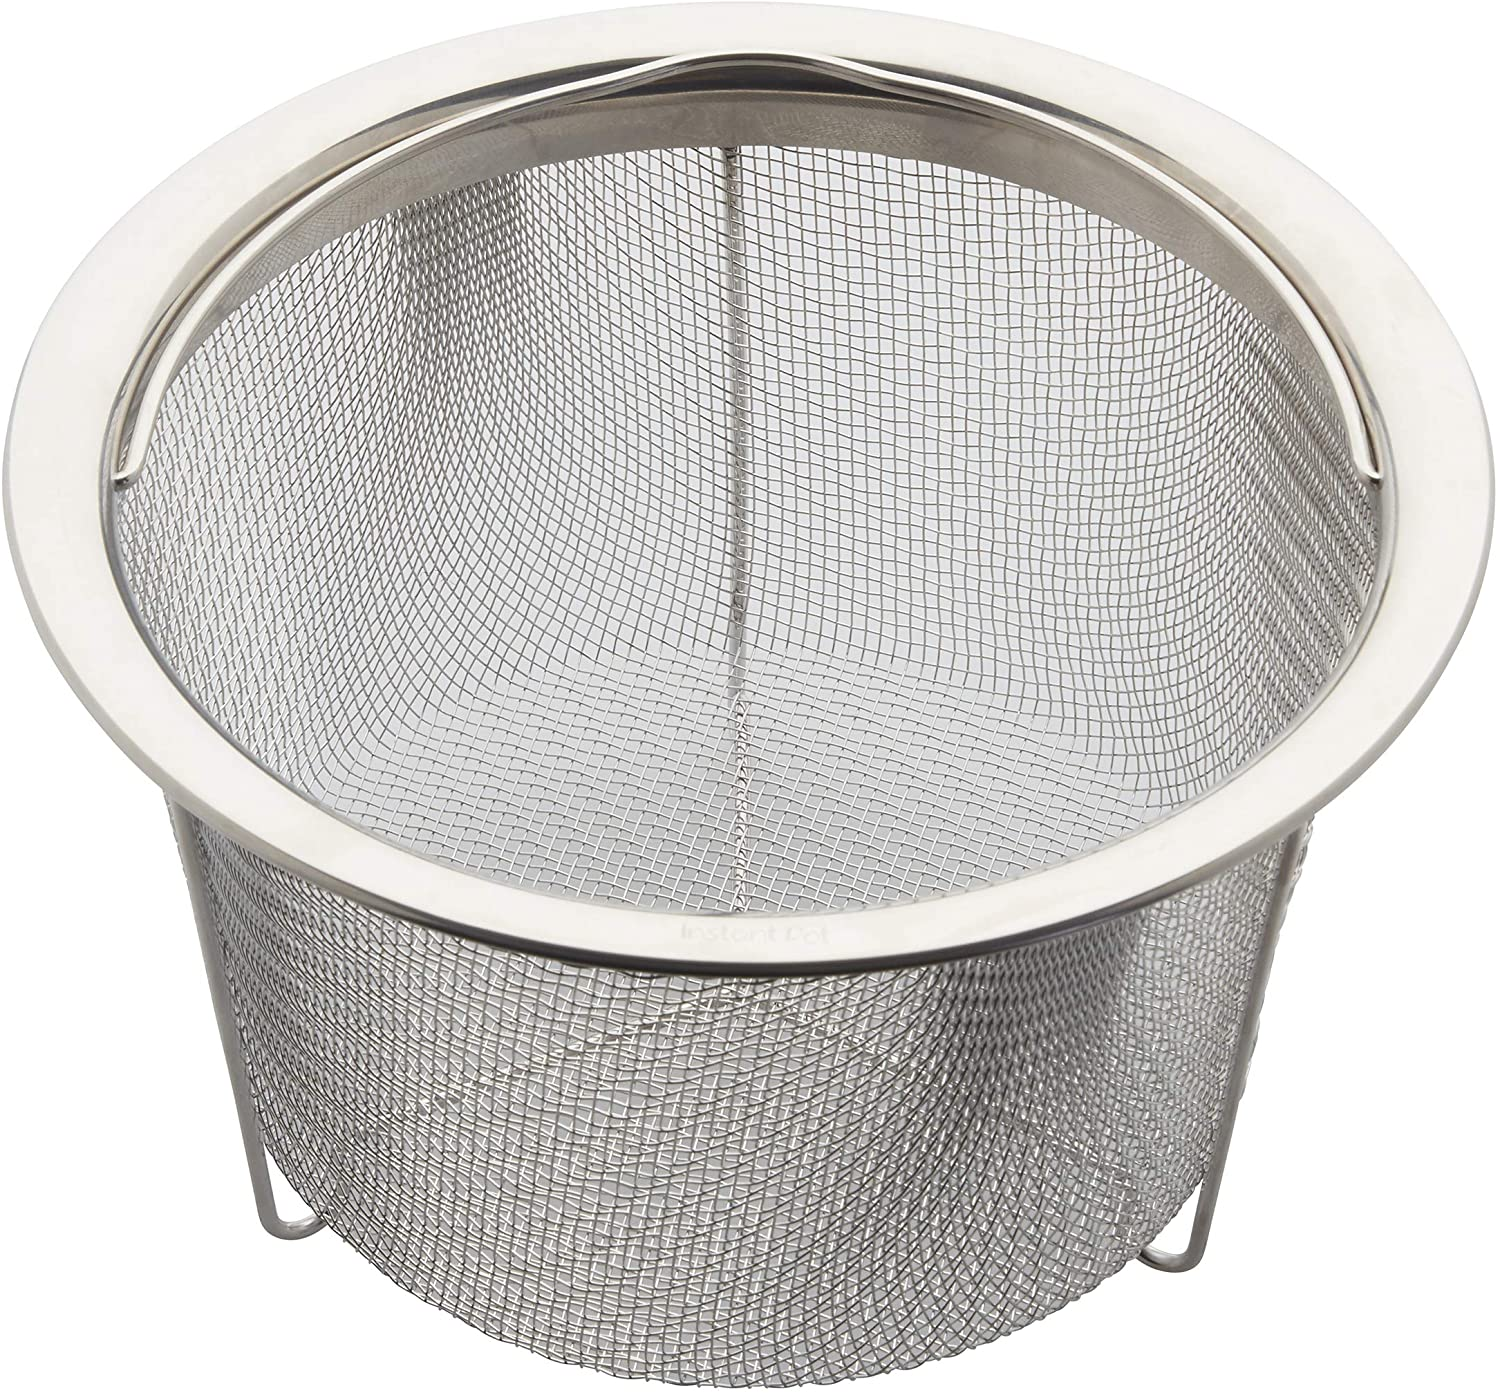 Instant Pot Official Large Mesh Steamer Basket, Stainless Steel